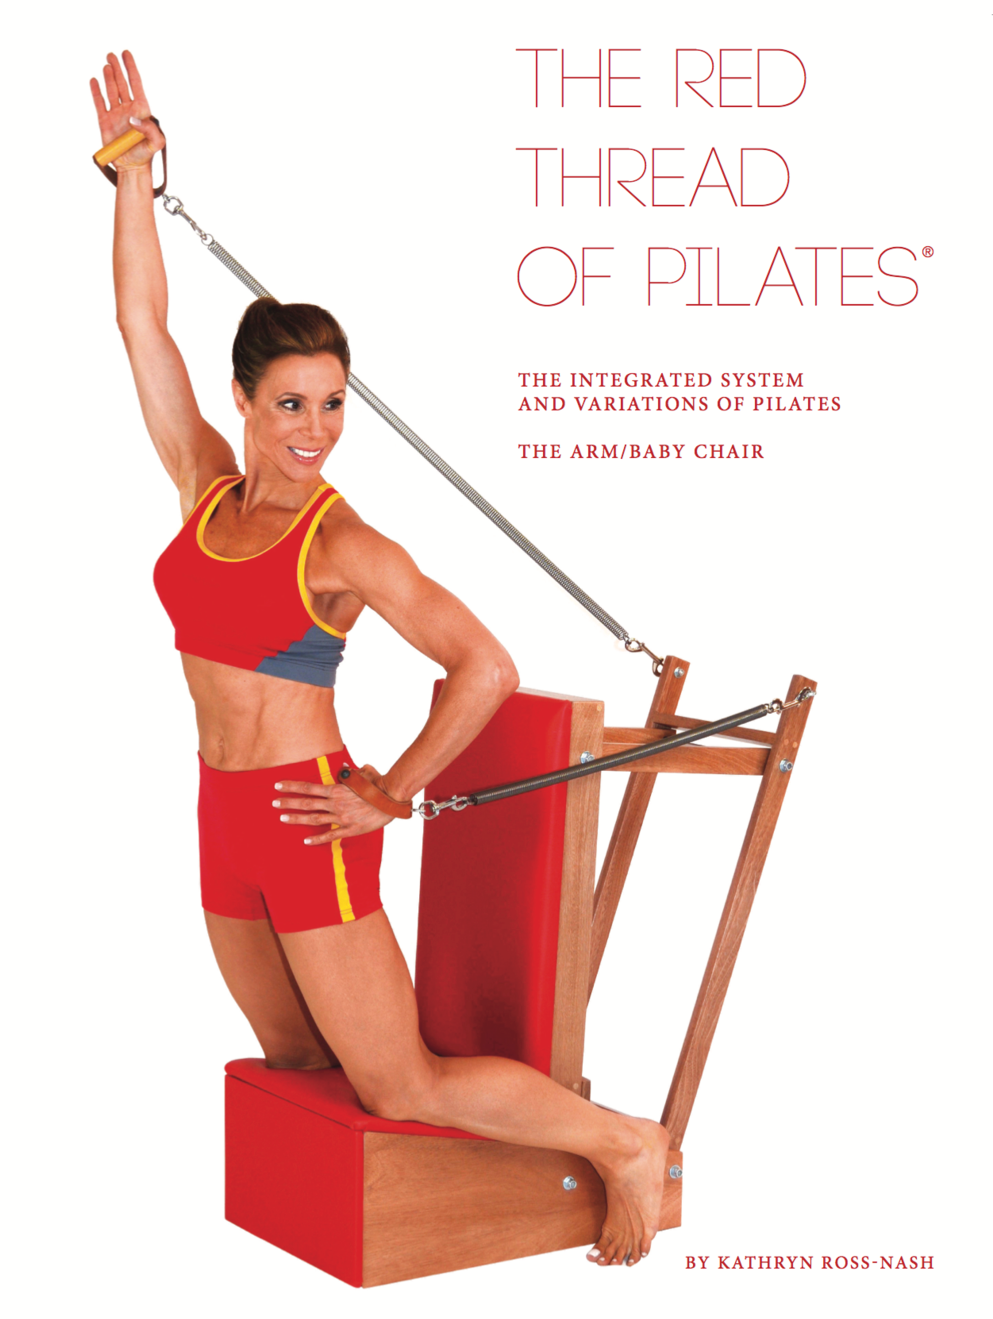 The Red Thread of Pilates - Arm/Baby Chair